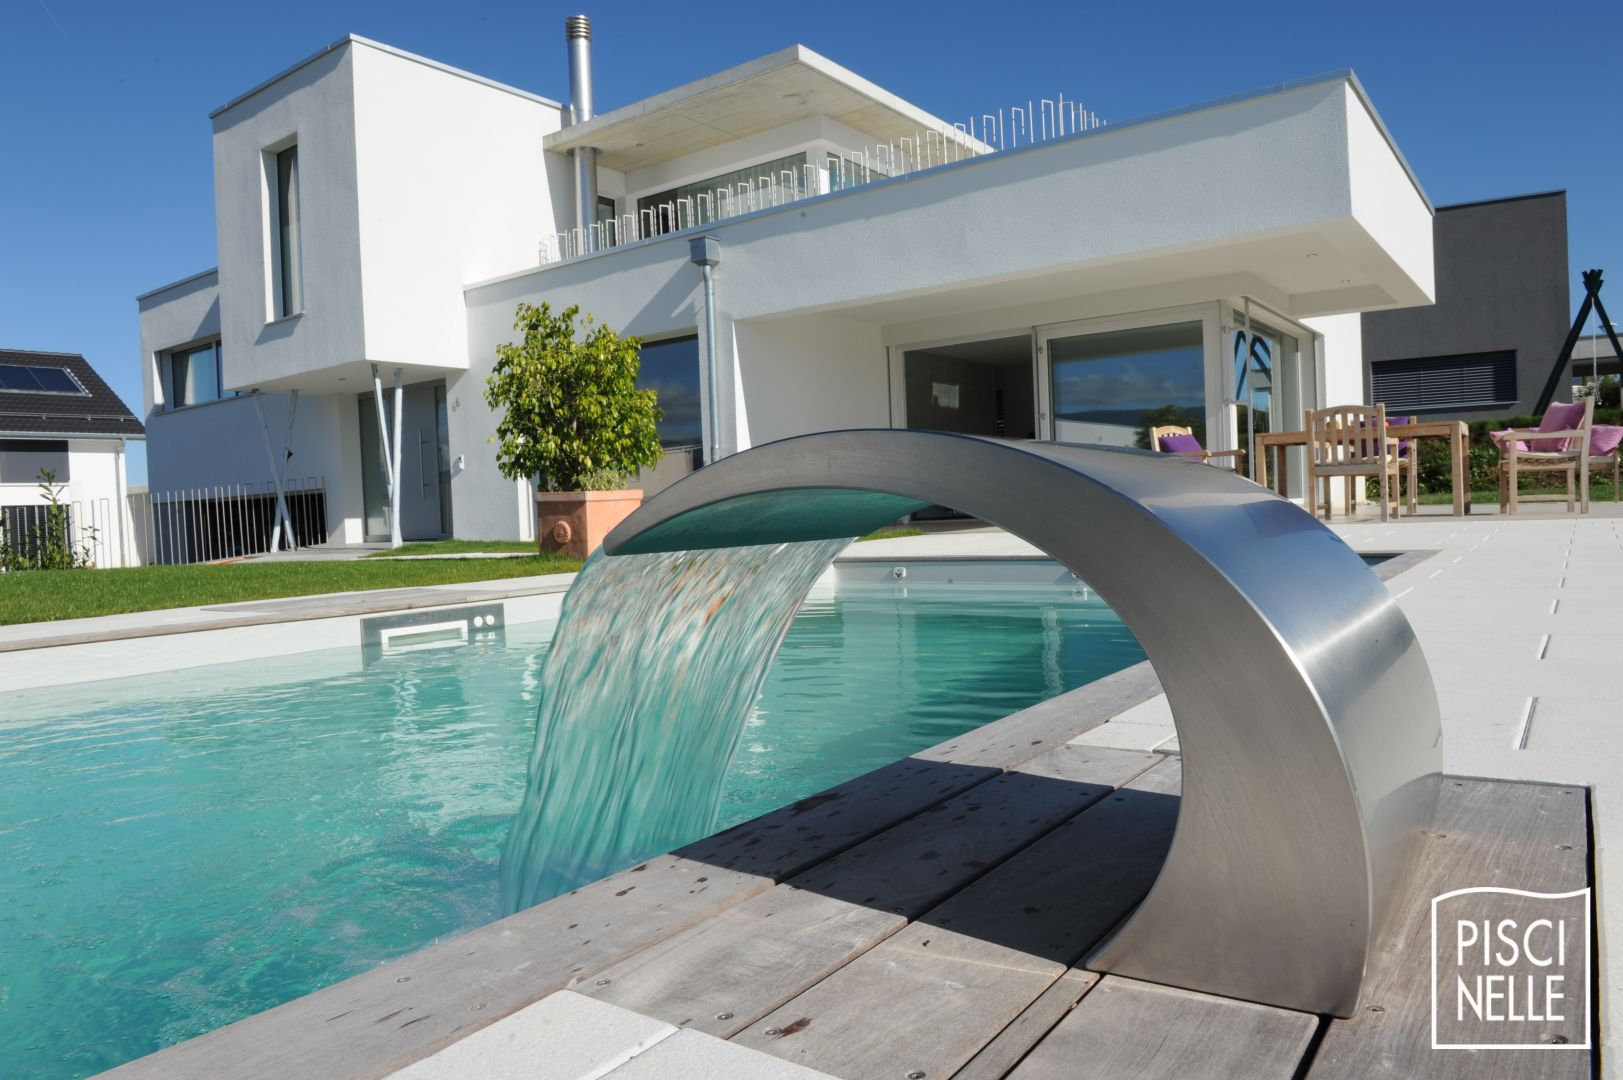 Reportage photo d une piscine design en suisse for Maison rectangulaire